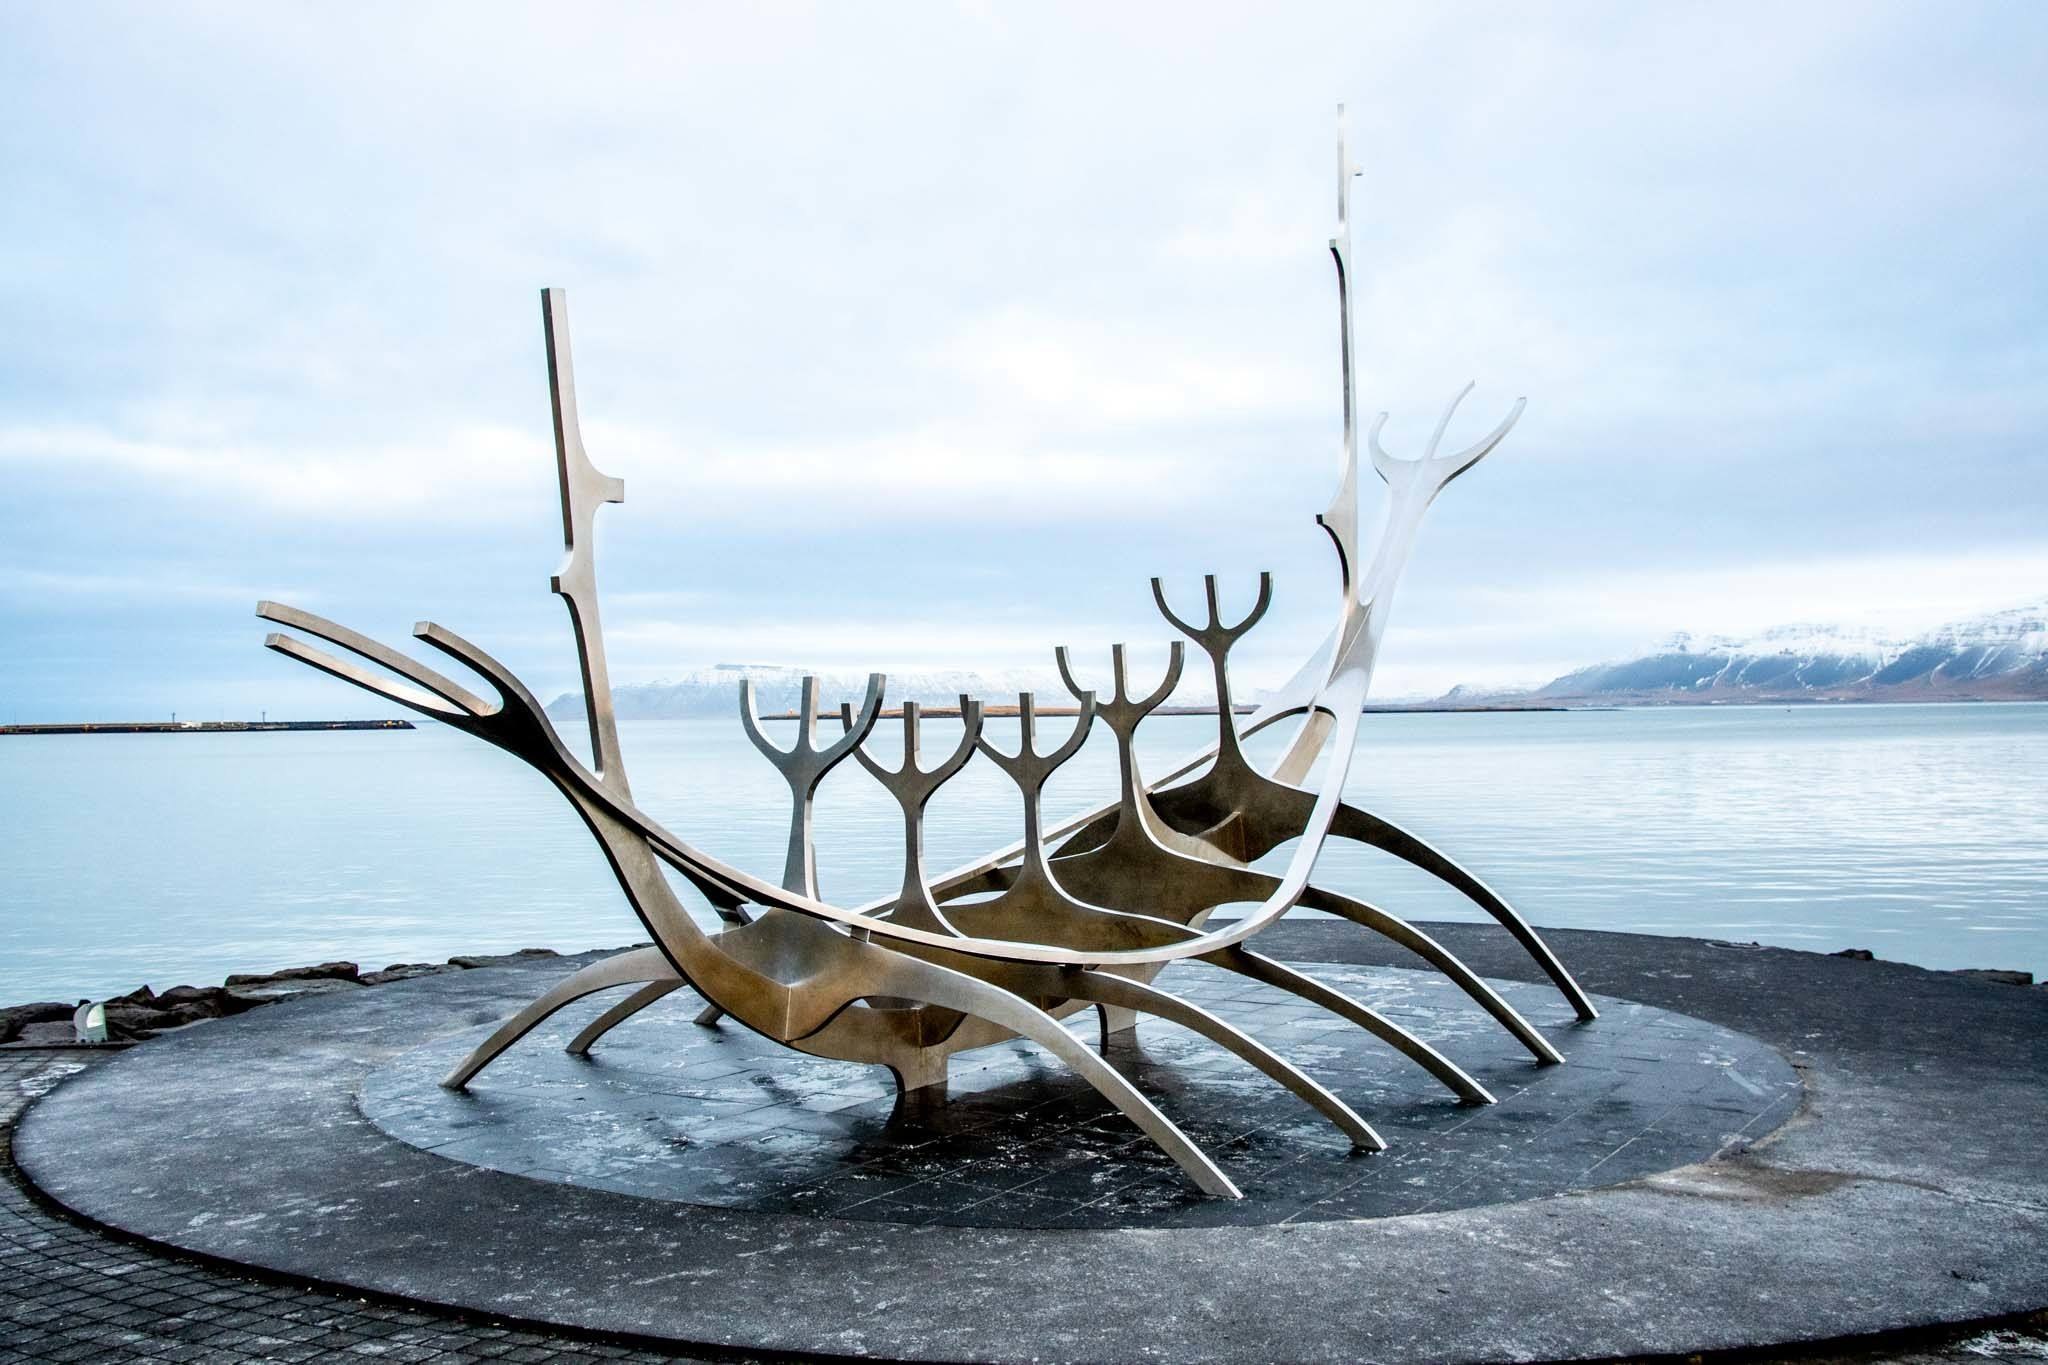 The steel Sun Voyager sculpture in Iceland